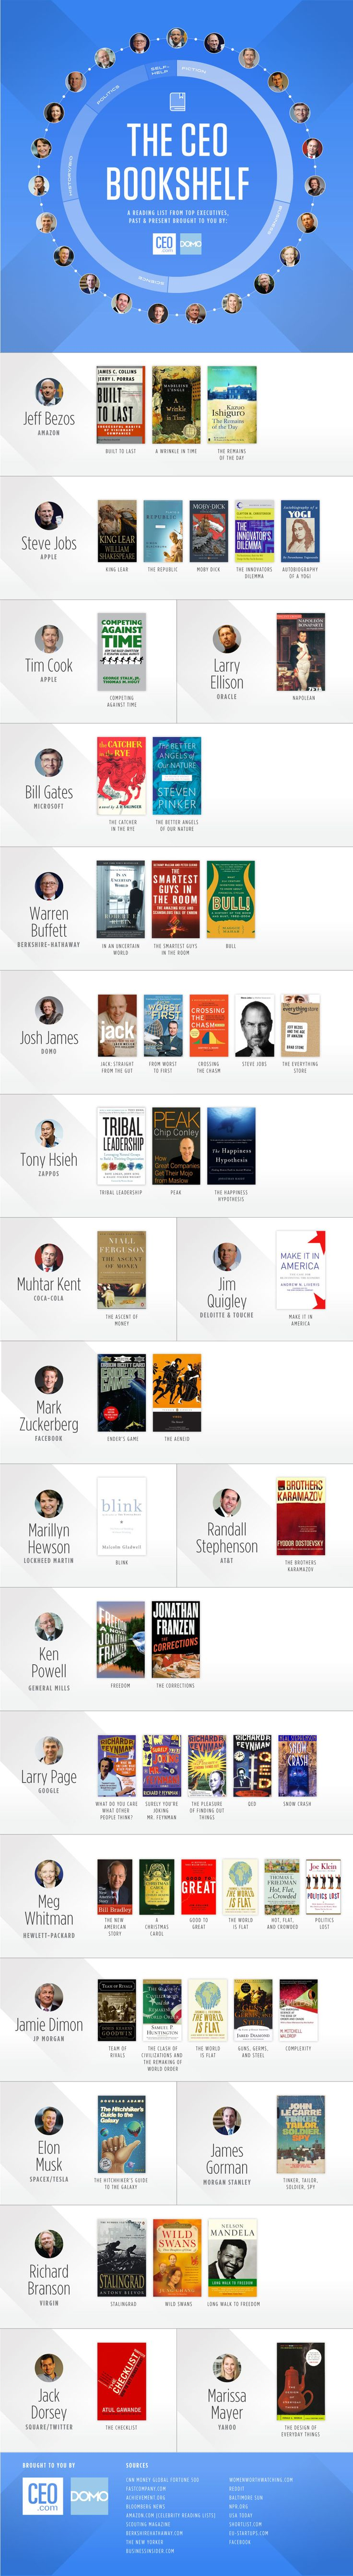 22 Top CEOs Reveal Their Favorite Books (Infographic) | Inc.com